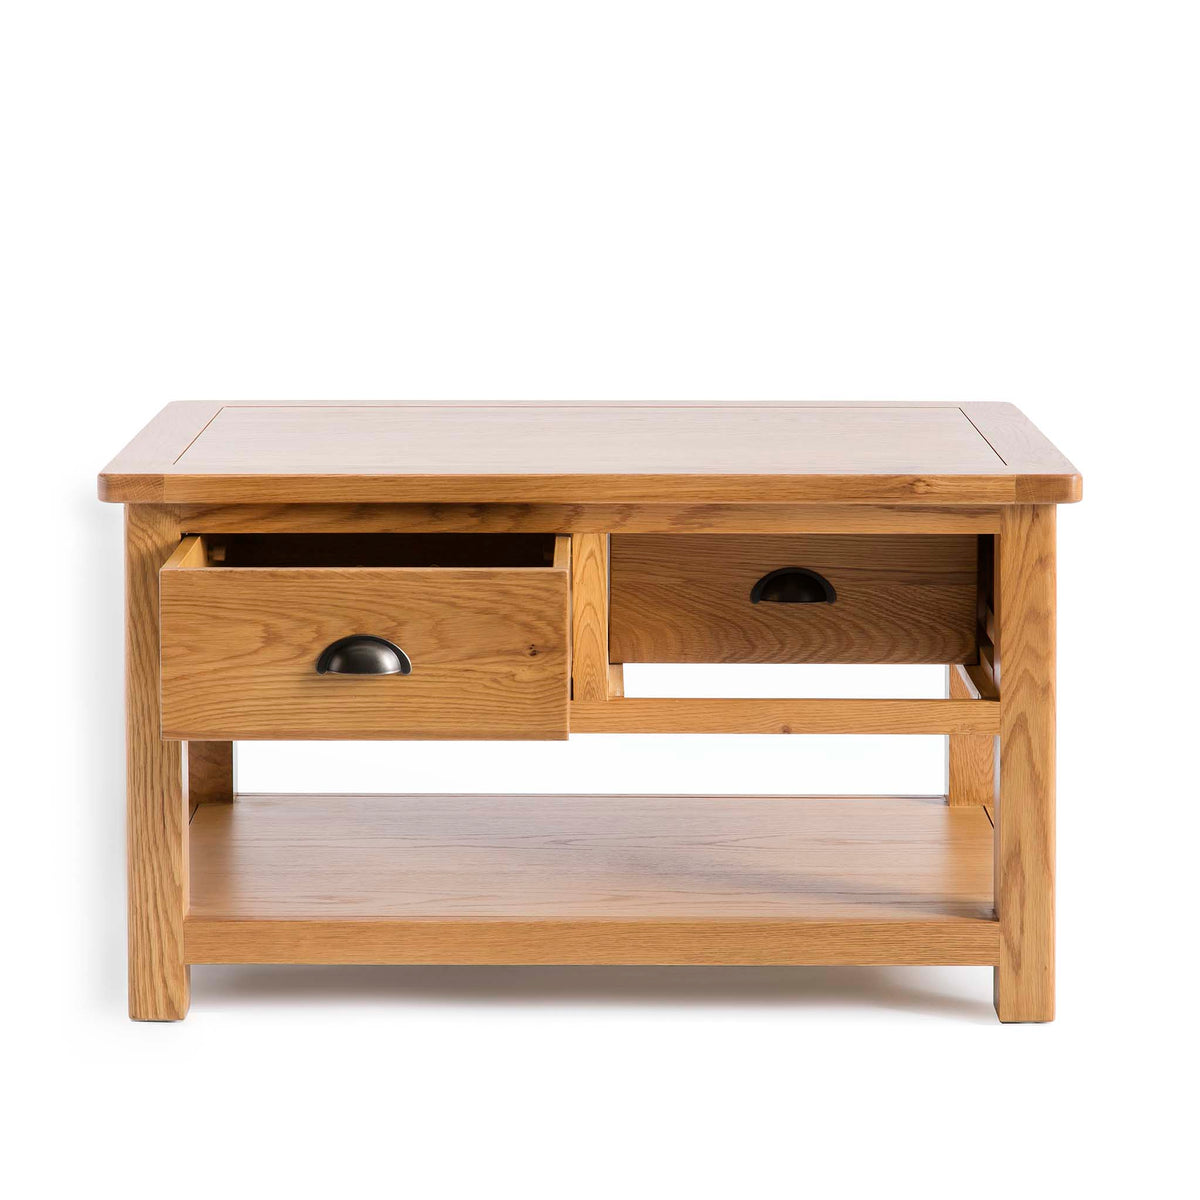 Lower shelf of Roseland Oak 2 Drawer Coffee Table